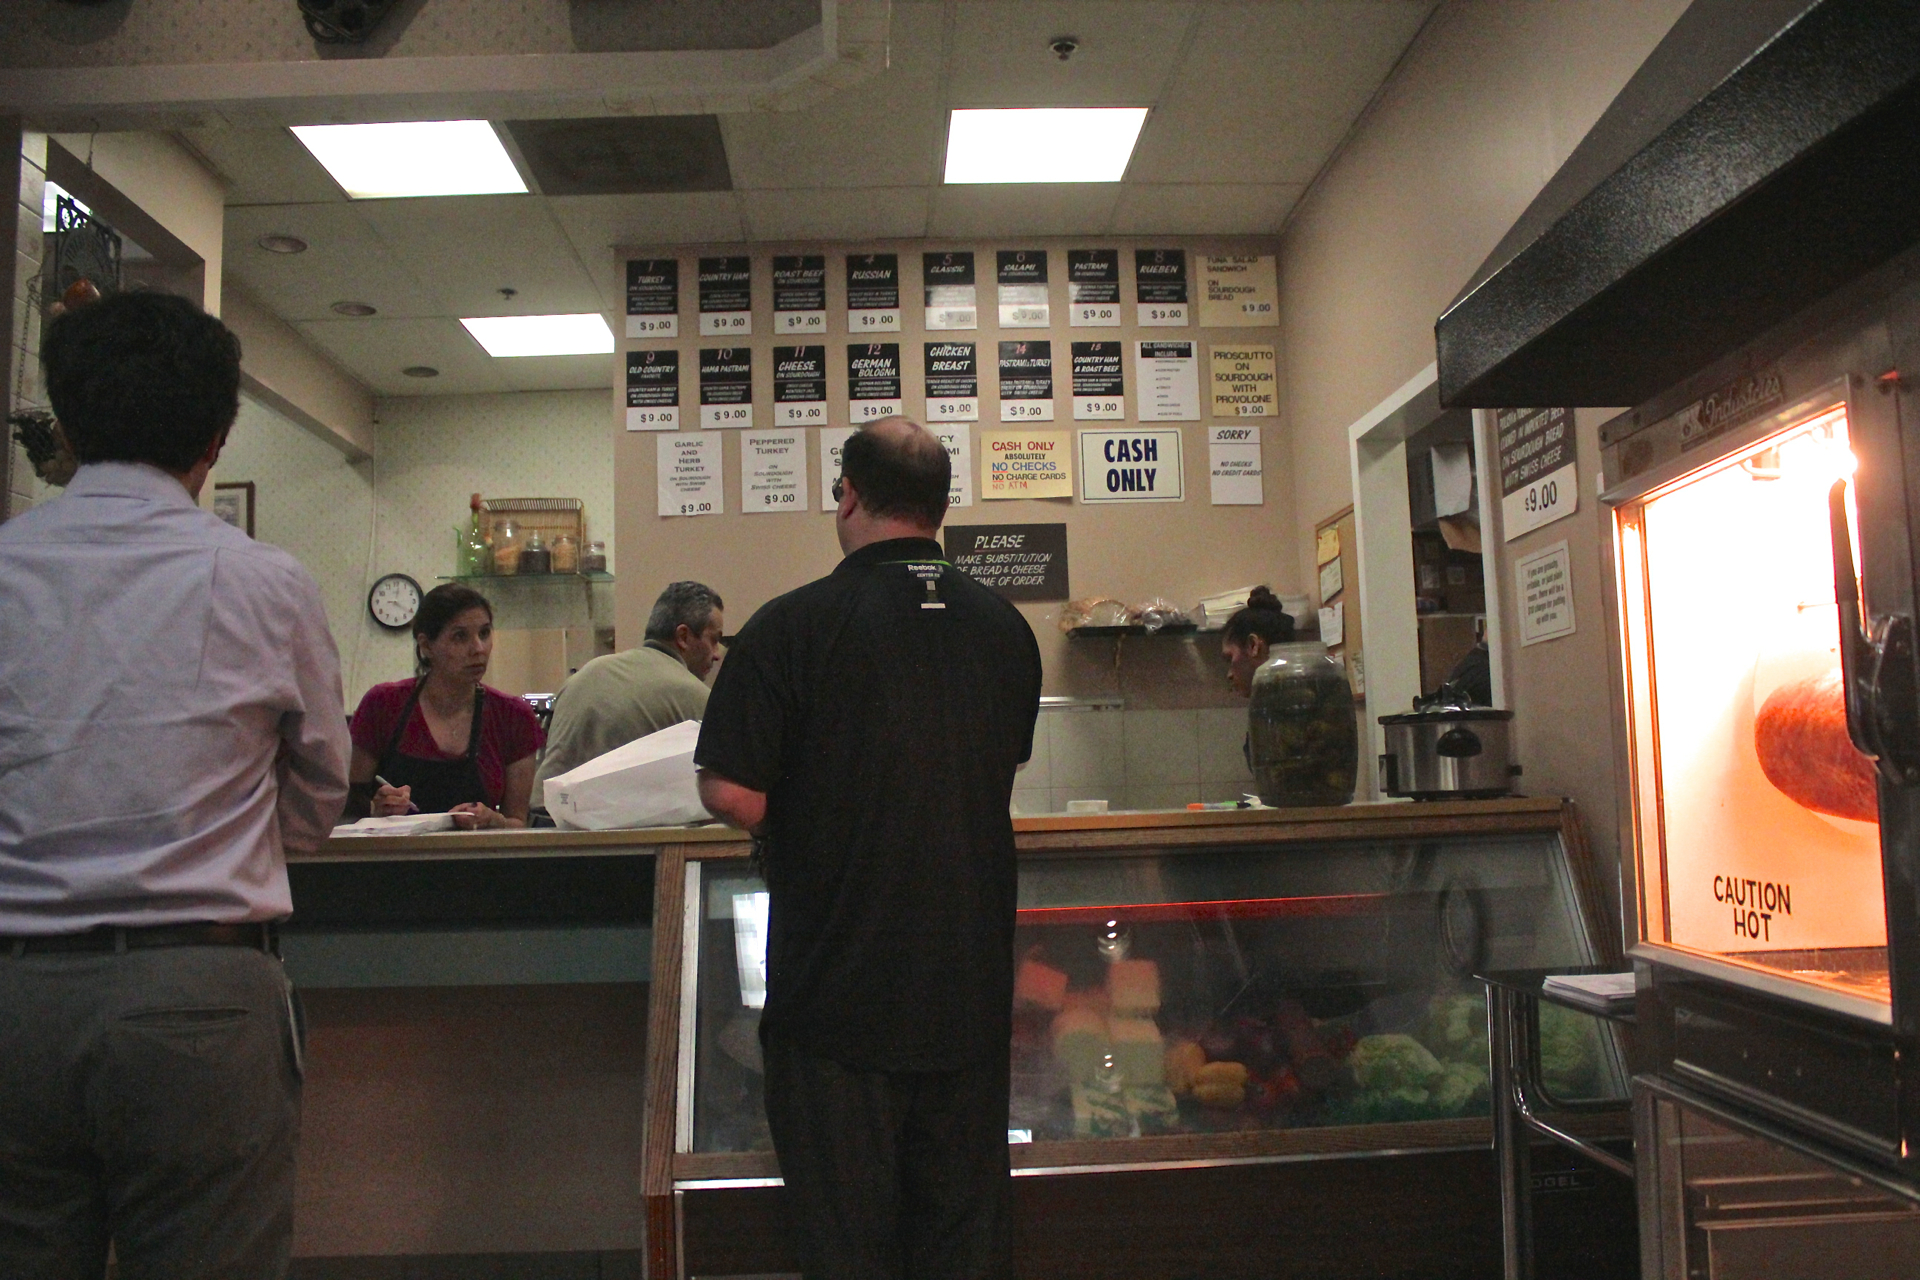 Customers ordering at the counter of Freshly Baked Eatery.